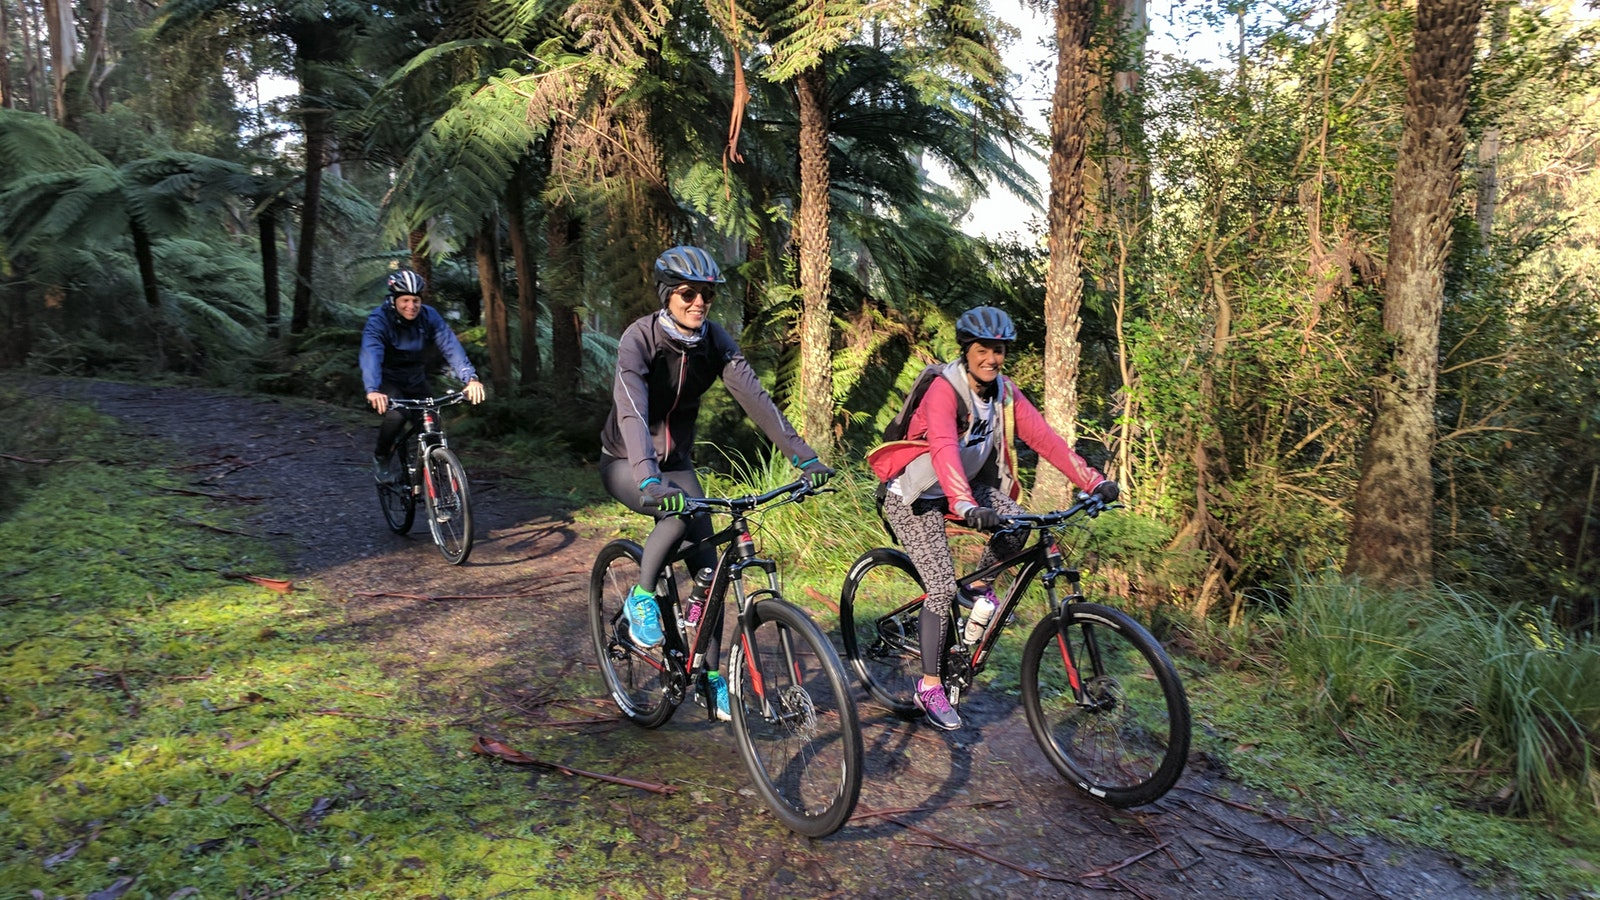 Yarra Valley rainforest riding